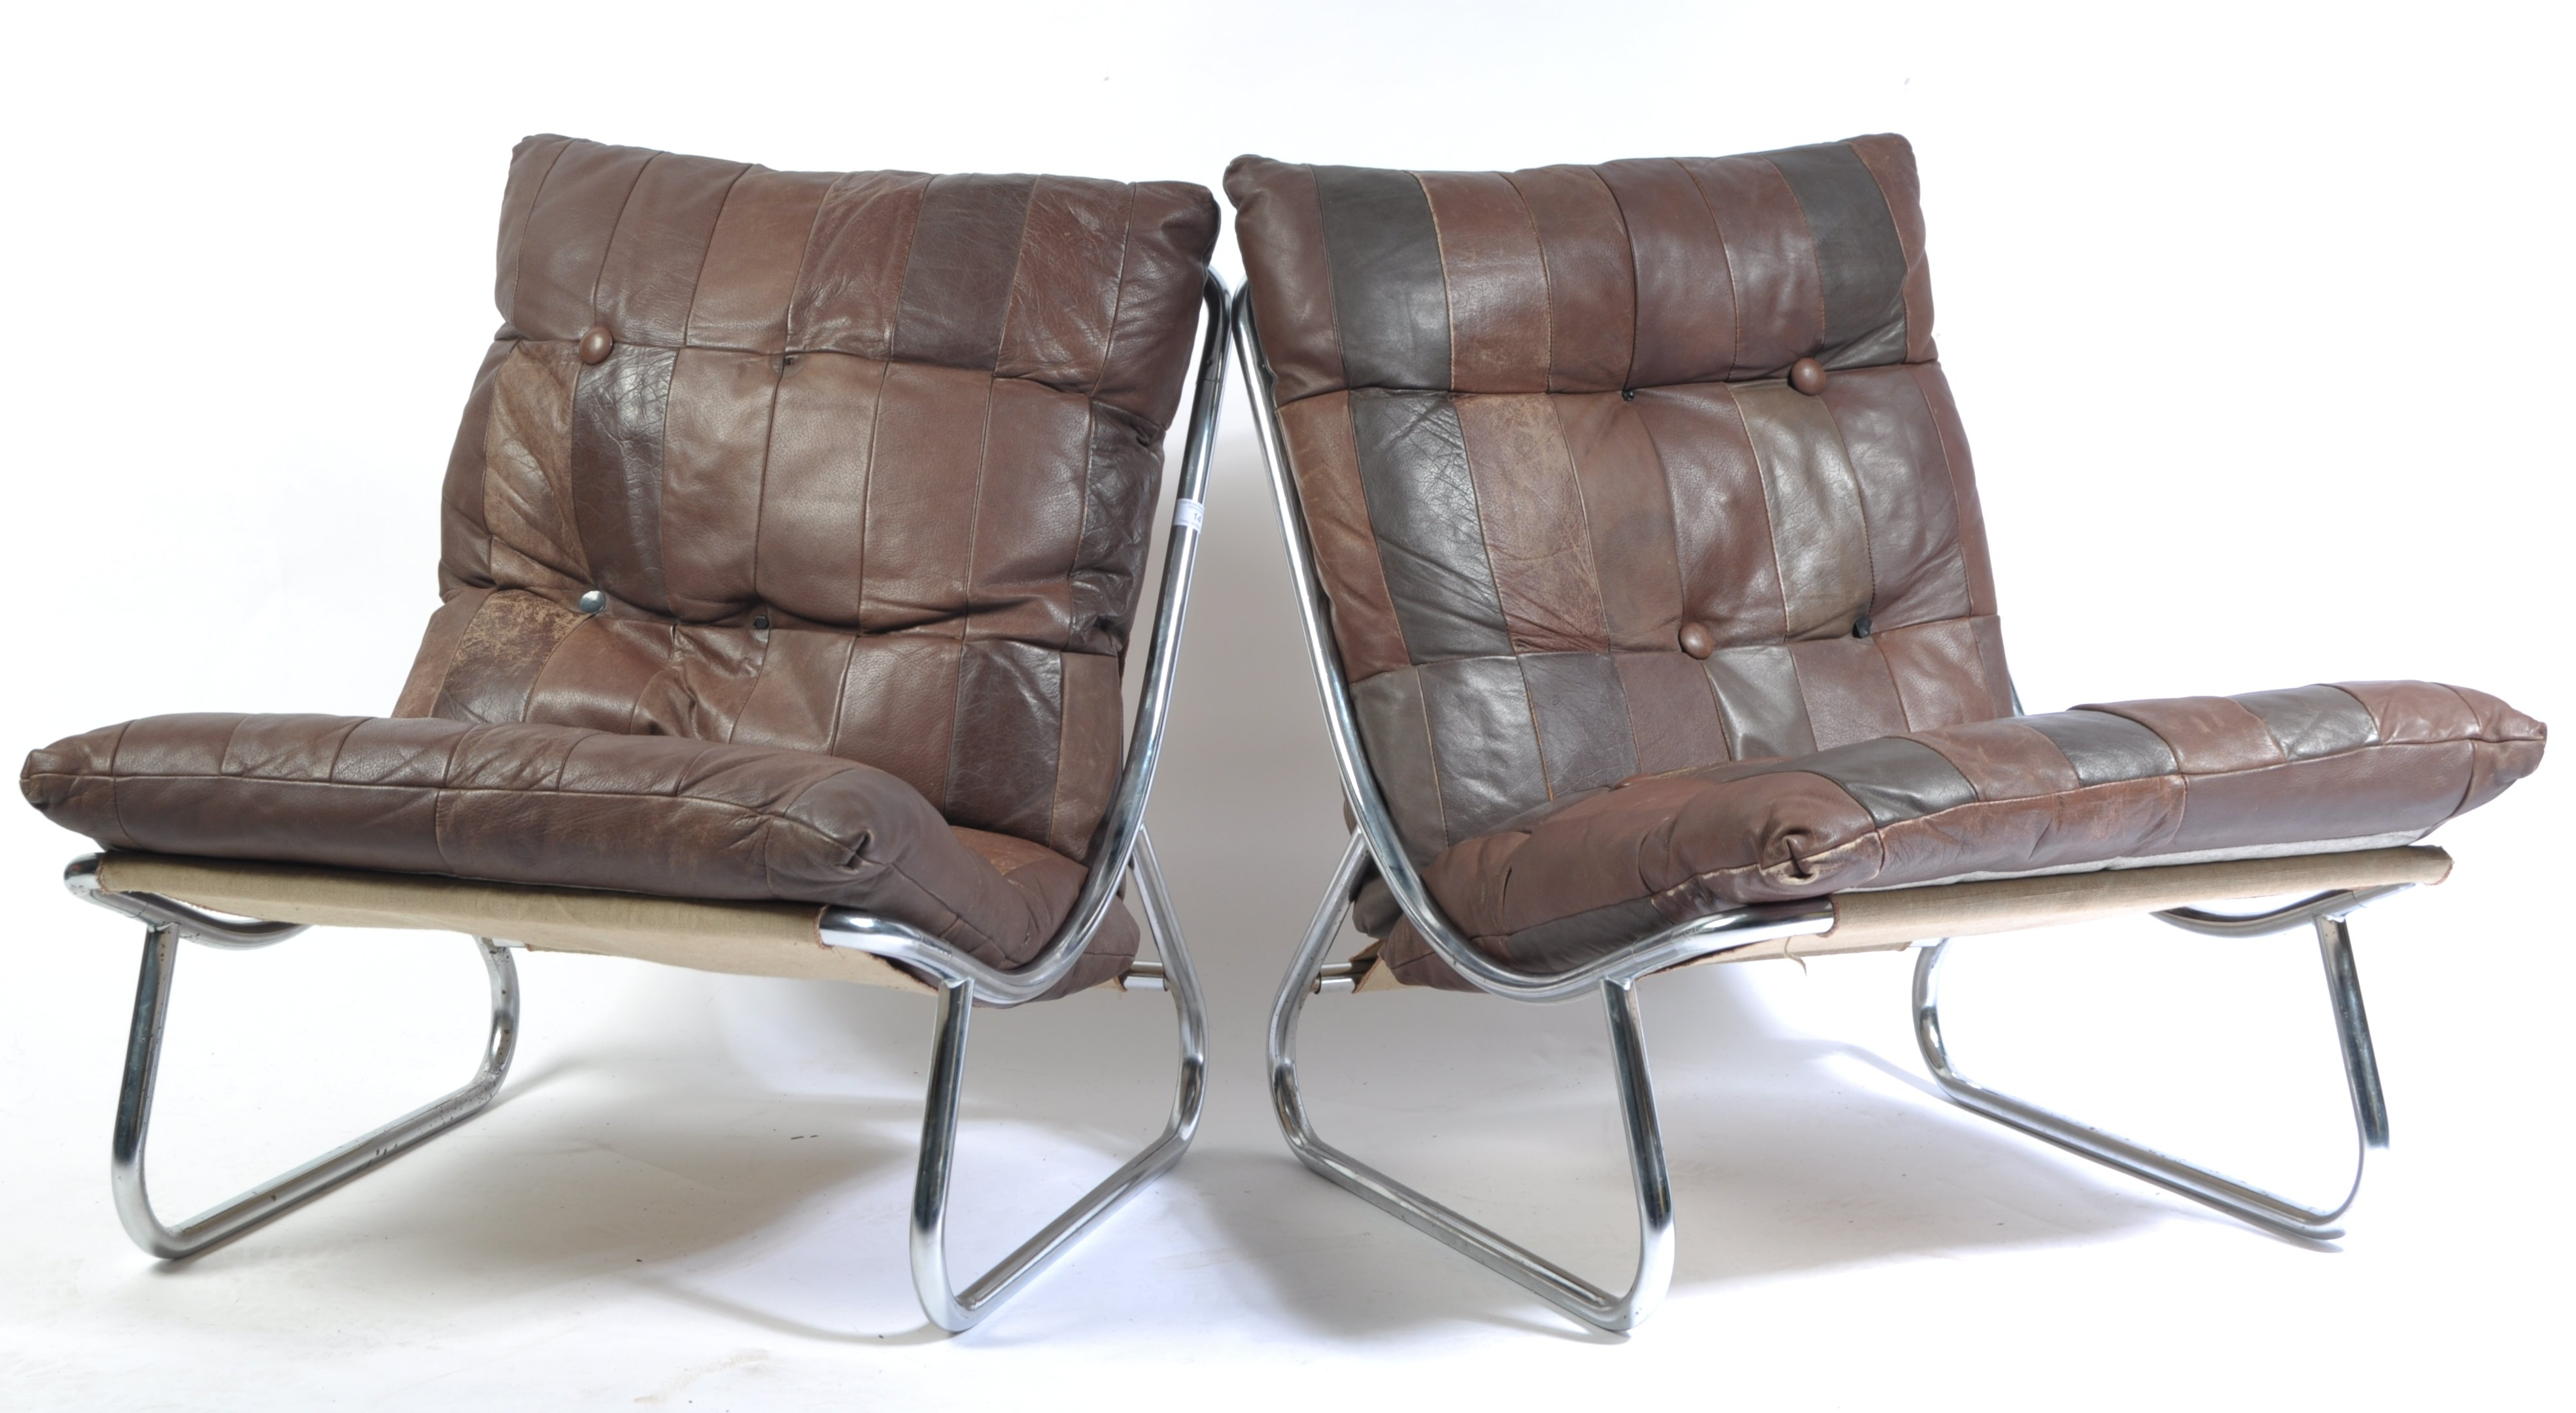 Lot 14 - PAIR OF 1970'S CHROME SLING / LOUNGE CHAIRS WITH PATCHWORK LEATHER